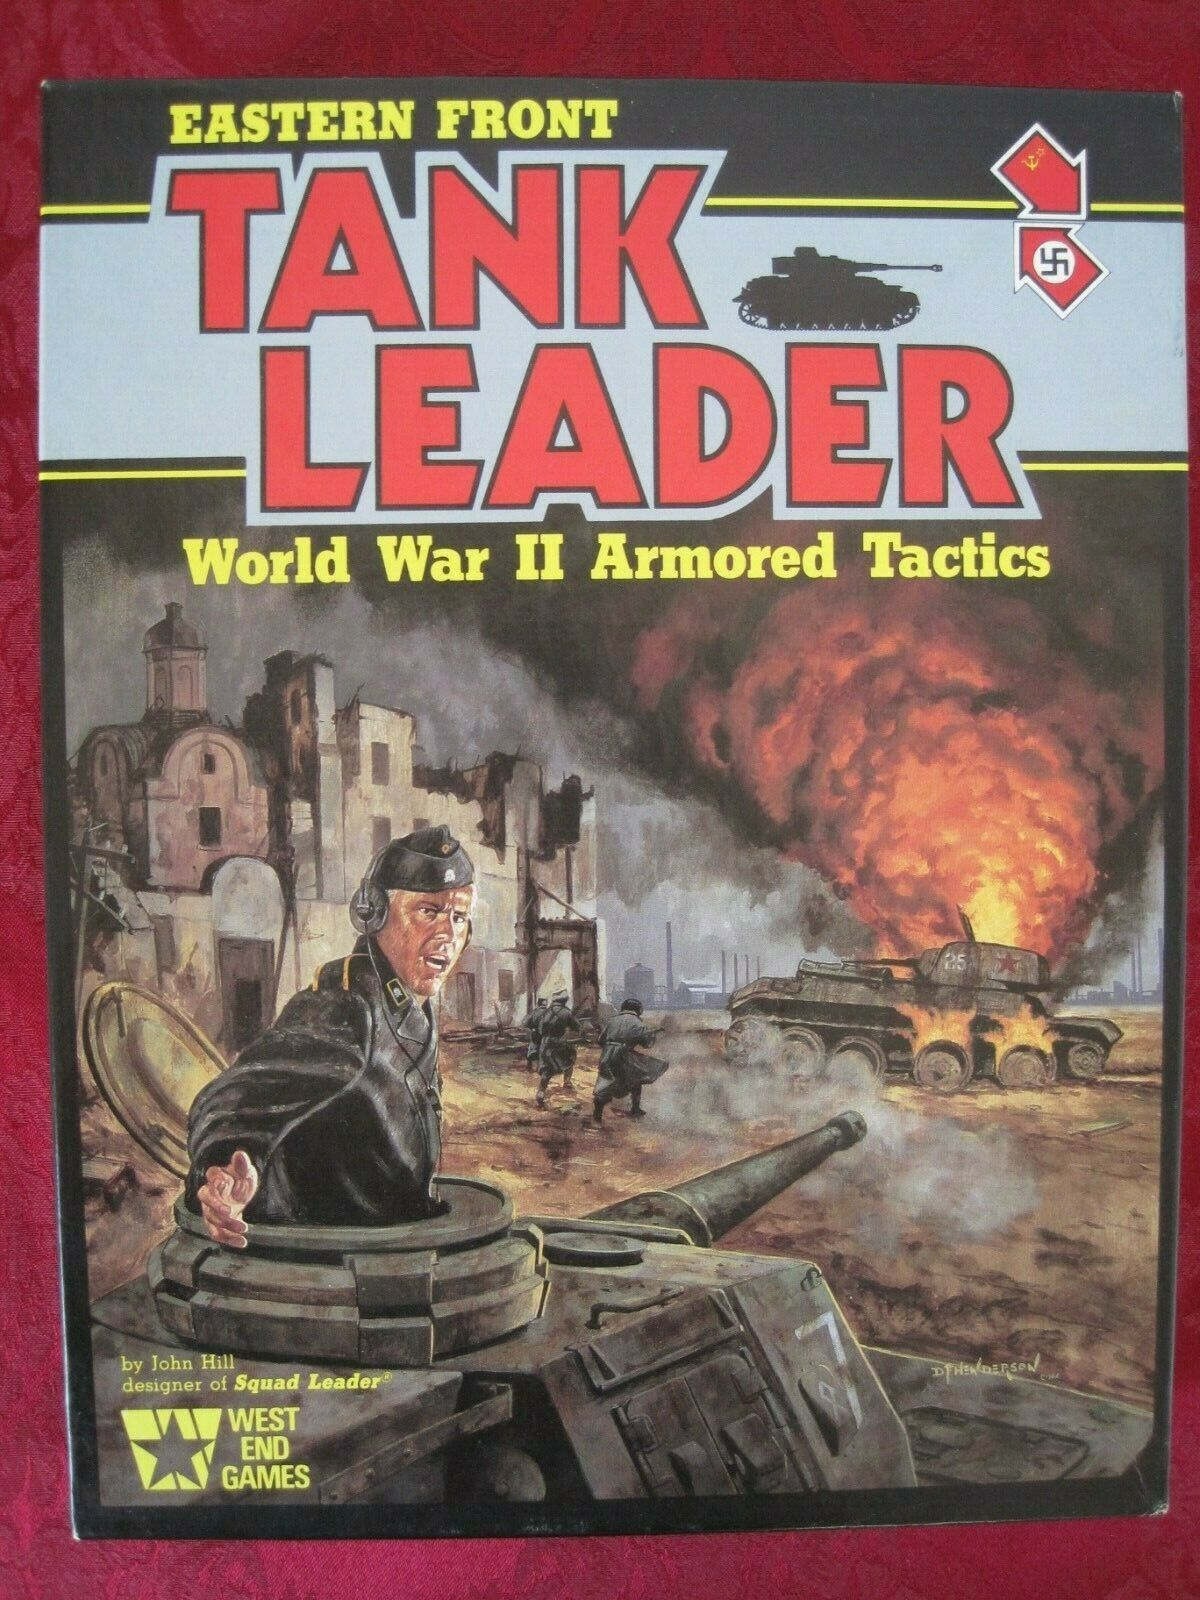 Tank Leader Eastern Front. WW II ArmGoldt Tactics. Unpunched Complete Excellent.